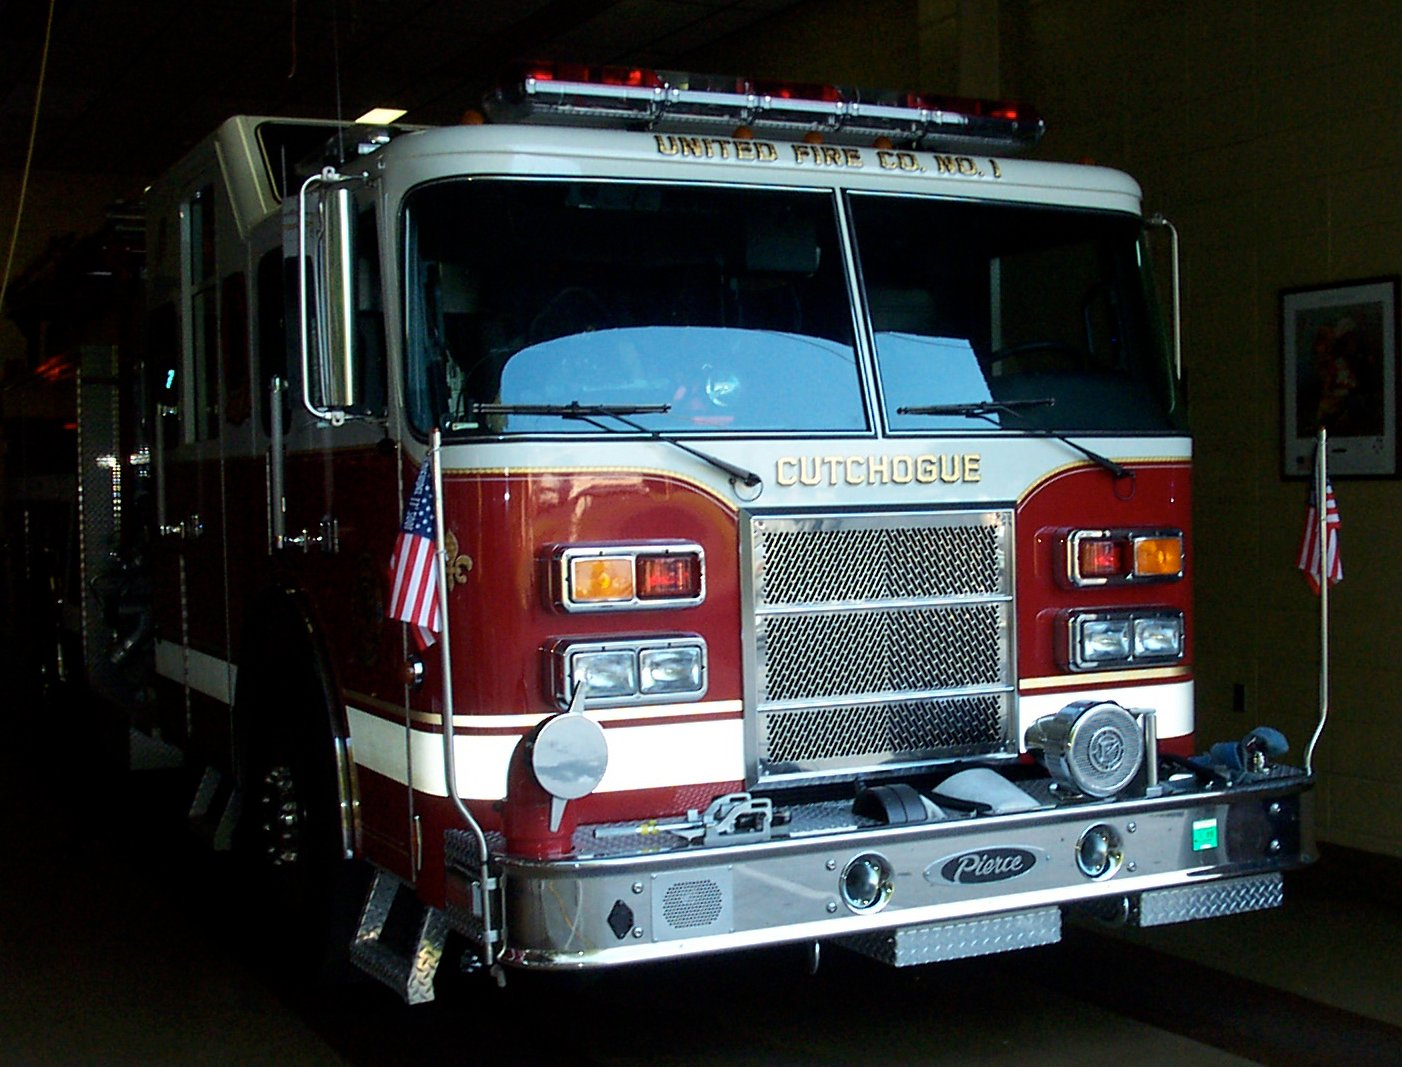 Oklahoma City FD Purchases 20 New Fire Engines